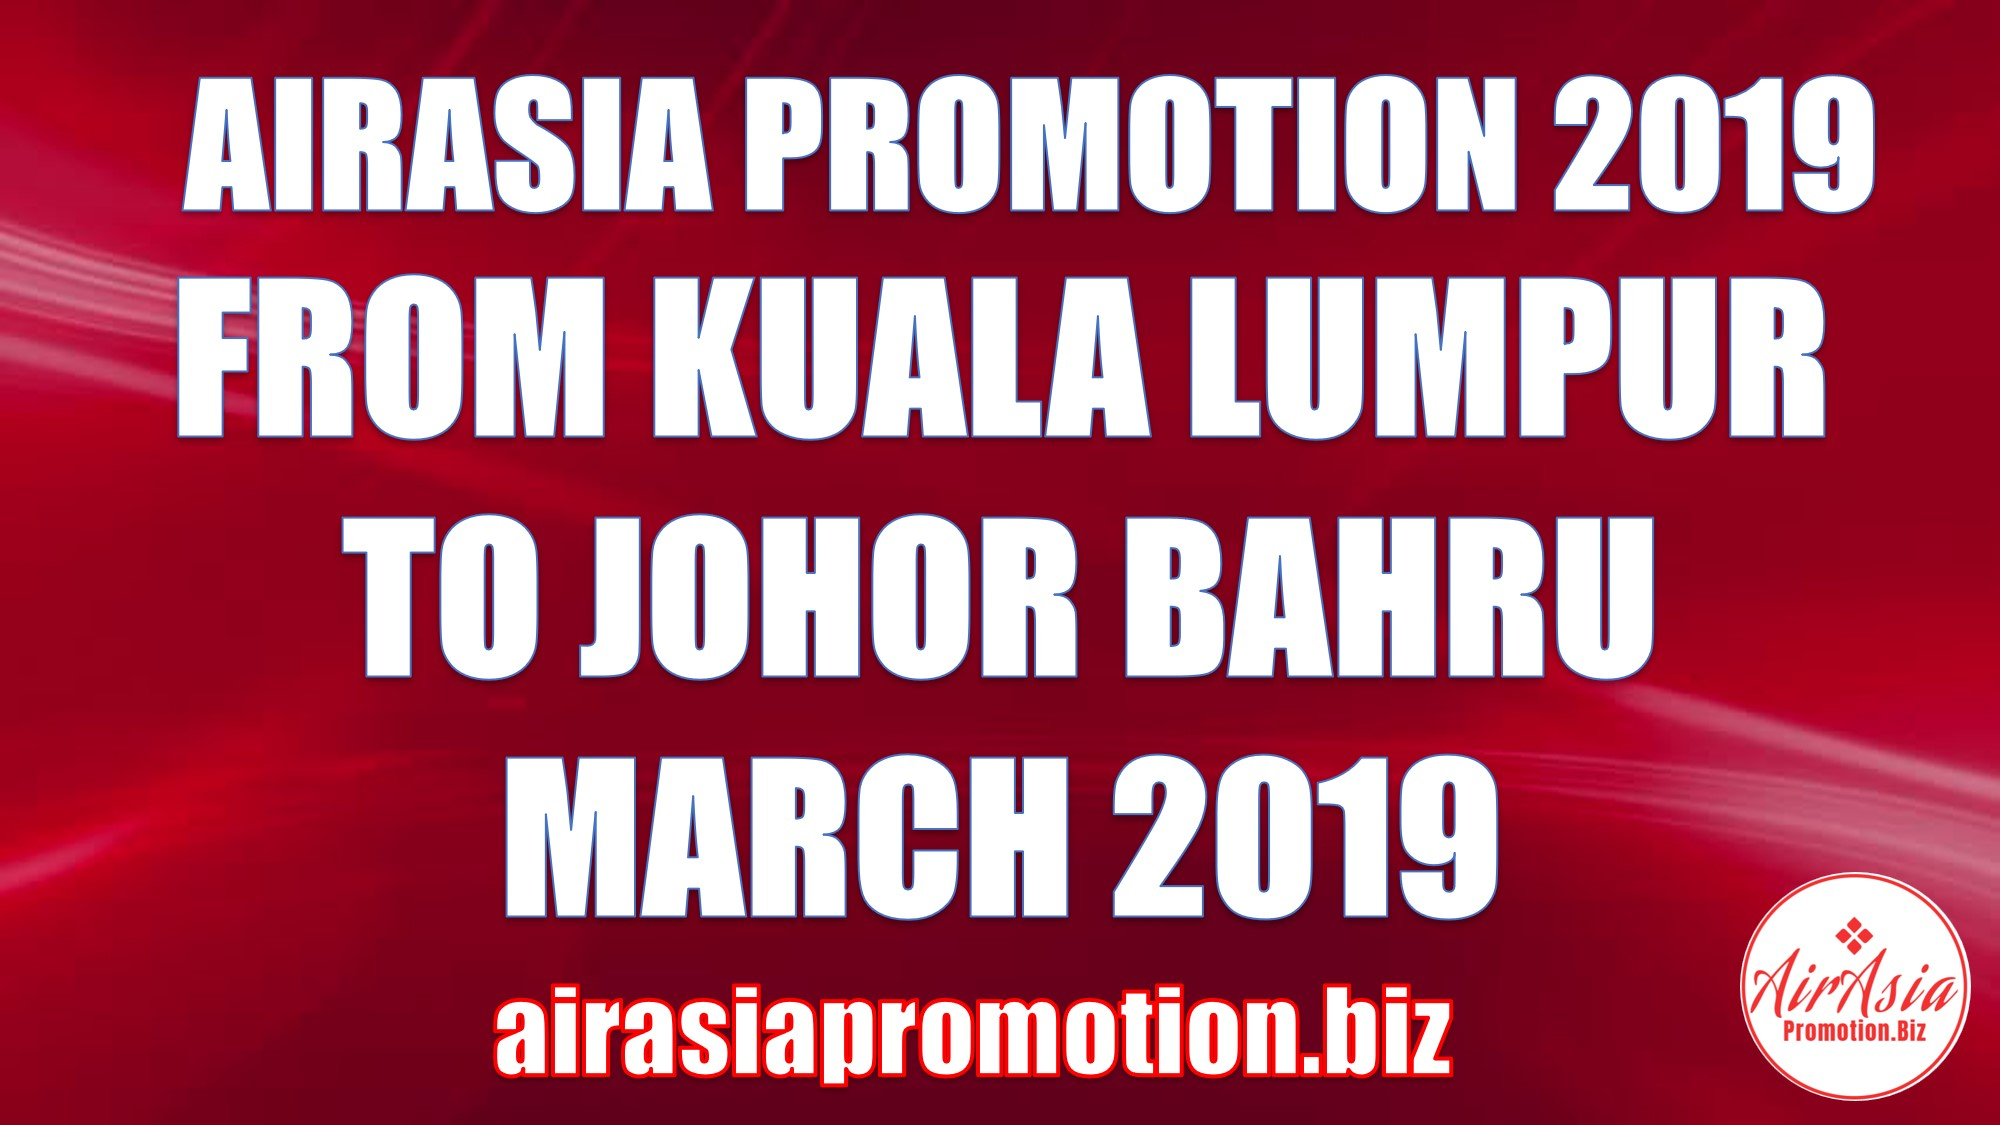 AirAsia Promotion From Kuala Lumpur To Johor Bahru In March 2019